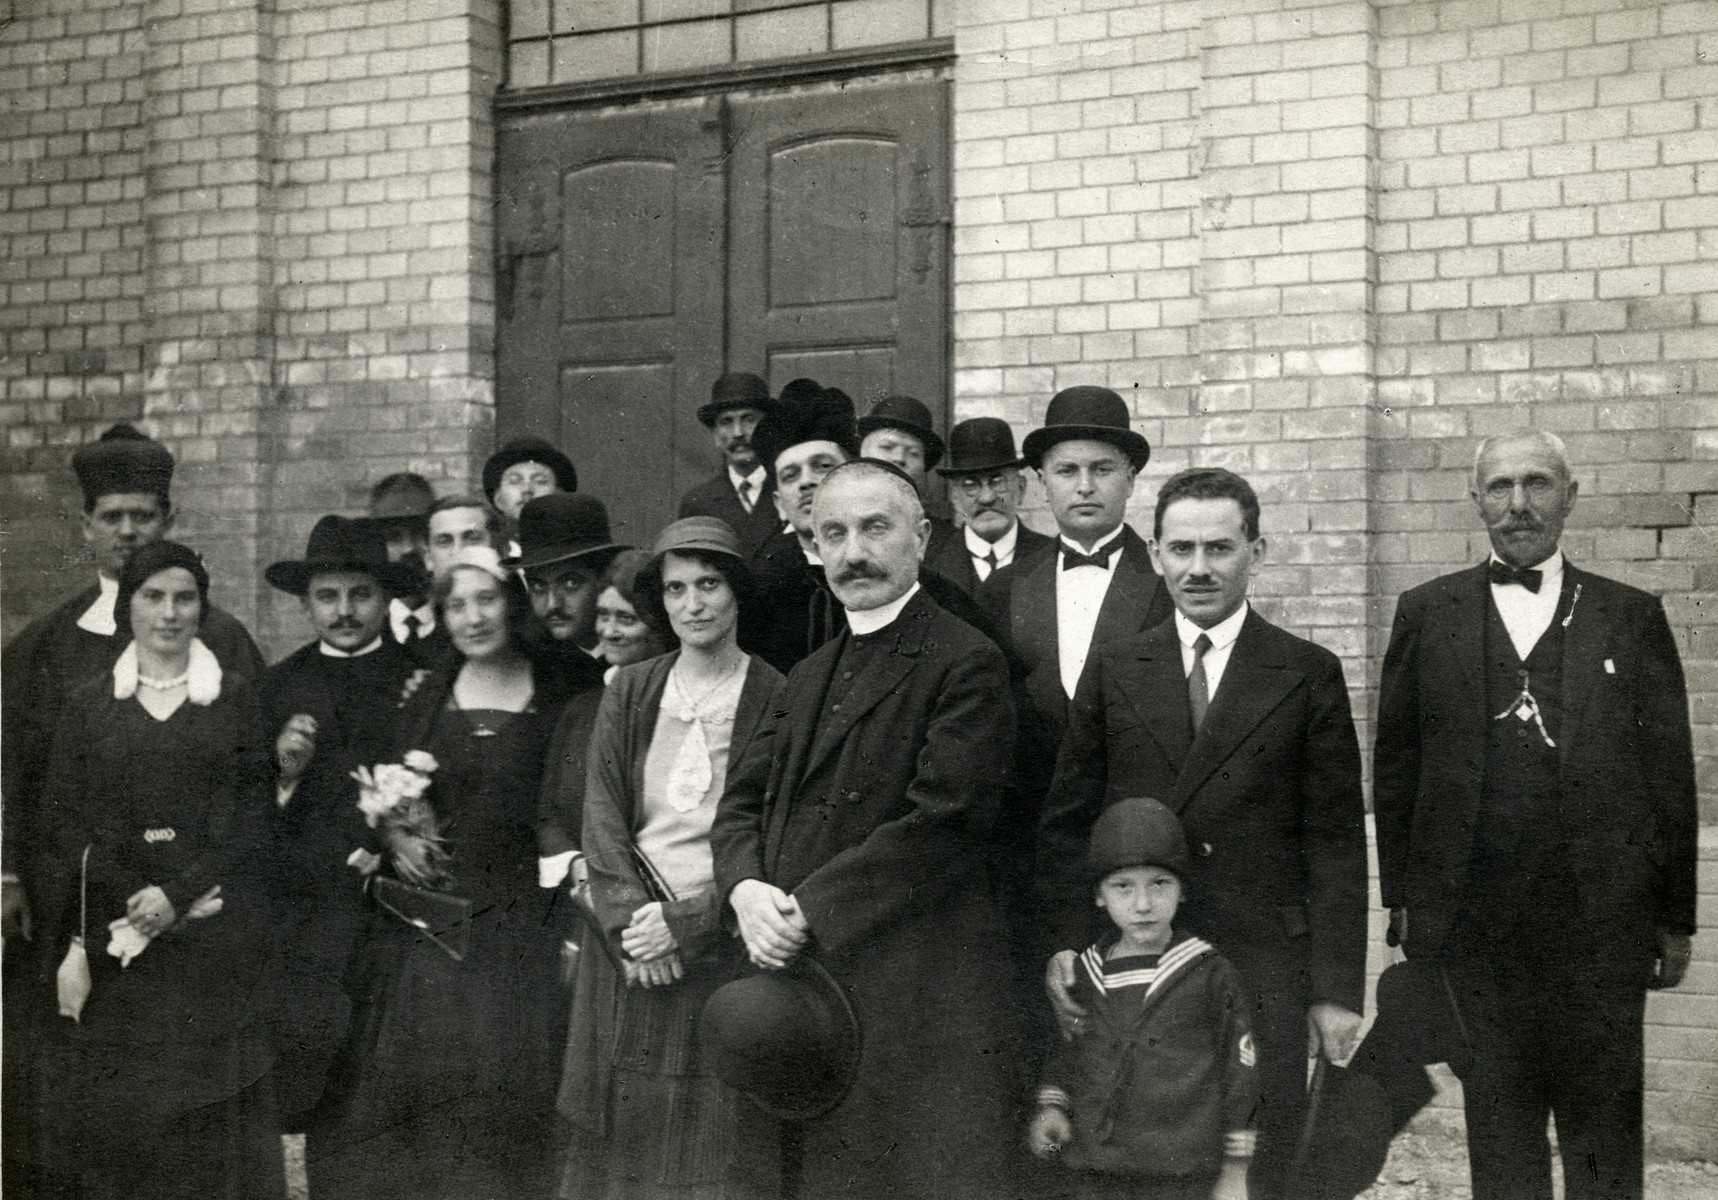 The Frenkel family celebrates the graduation of Rabbi Erne Frenkel, the Rabbi of Bicske.   Pictured are Jeno Frenkel (left corner), Edit Frenkel (holding flowers), Margit Weiss (an aunt of the donor, standing next to her), the donor's grandmother in the back, and Rabbi Erne Frenkel.